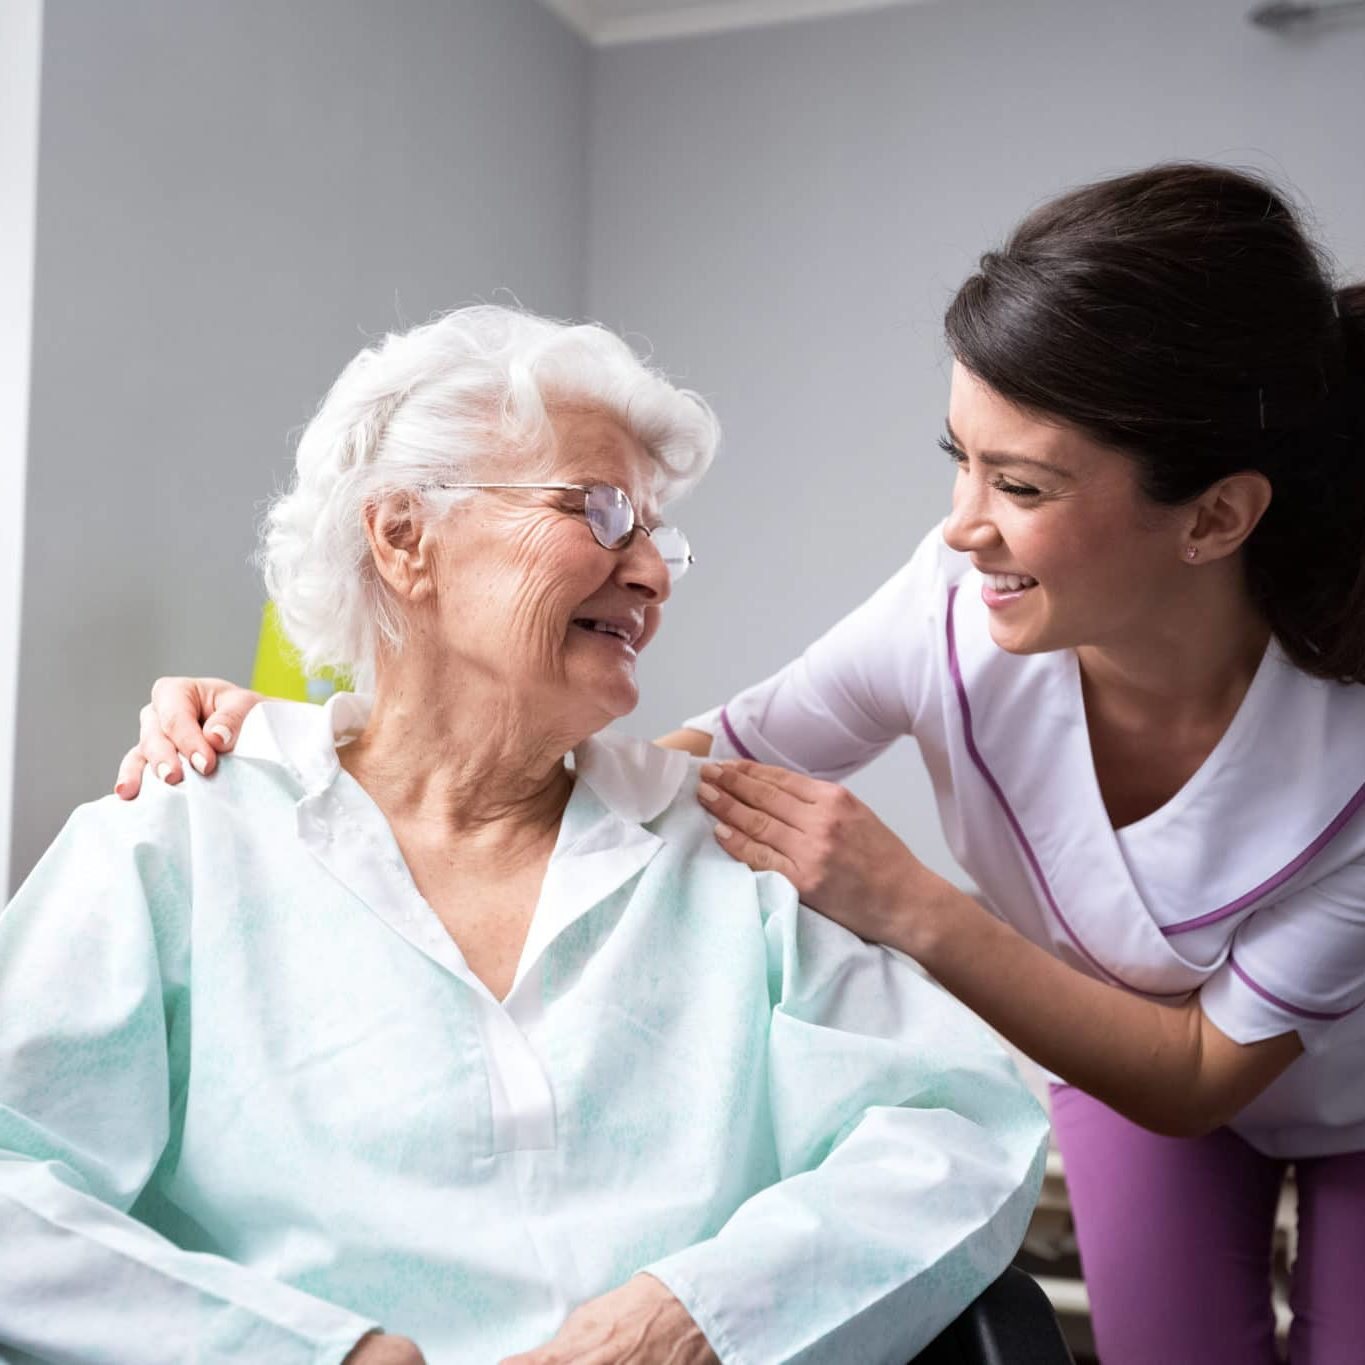 Satisfied and happy senior woman patient with nurse at nursing home